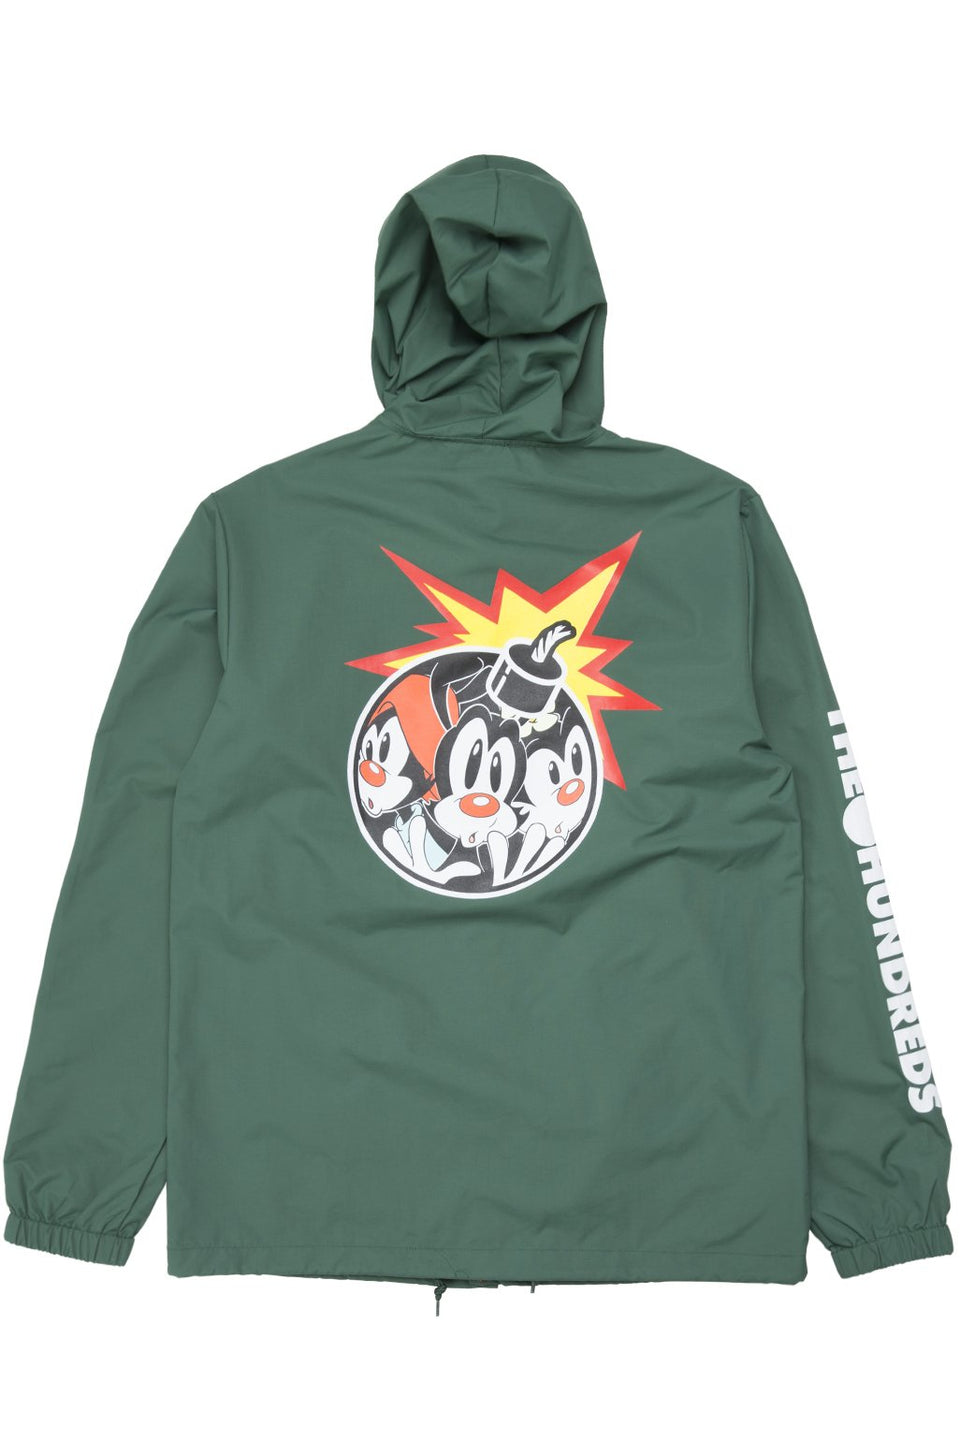 AniAdam Bomb Hooded Coach's Jacket